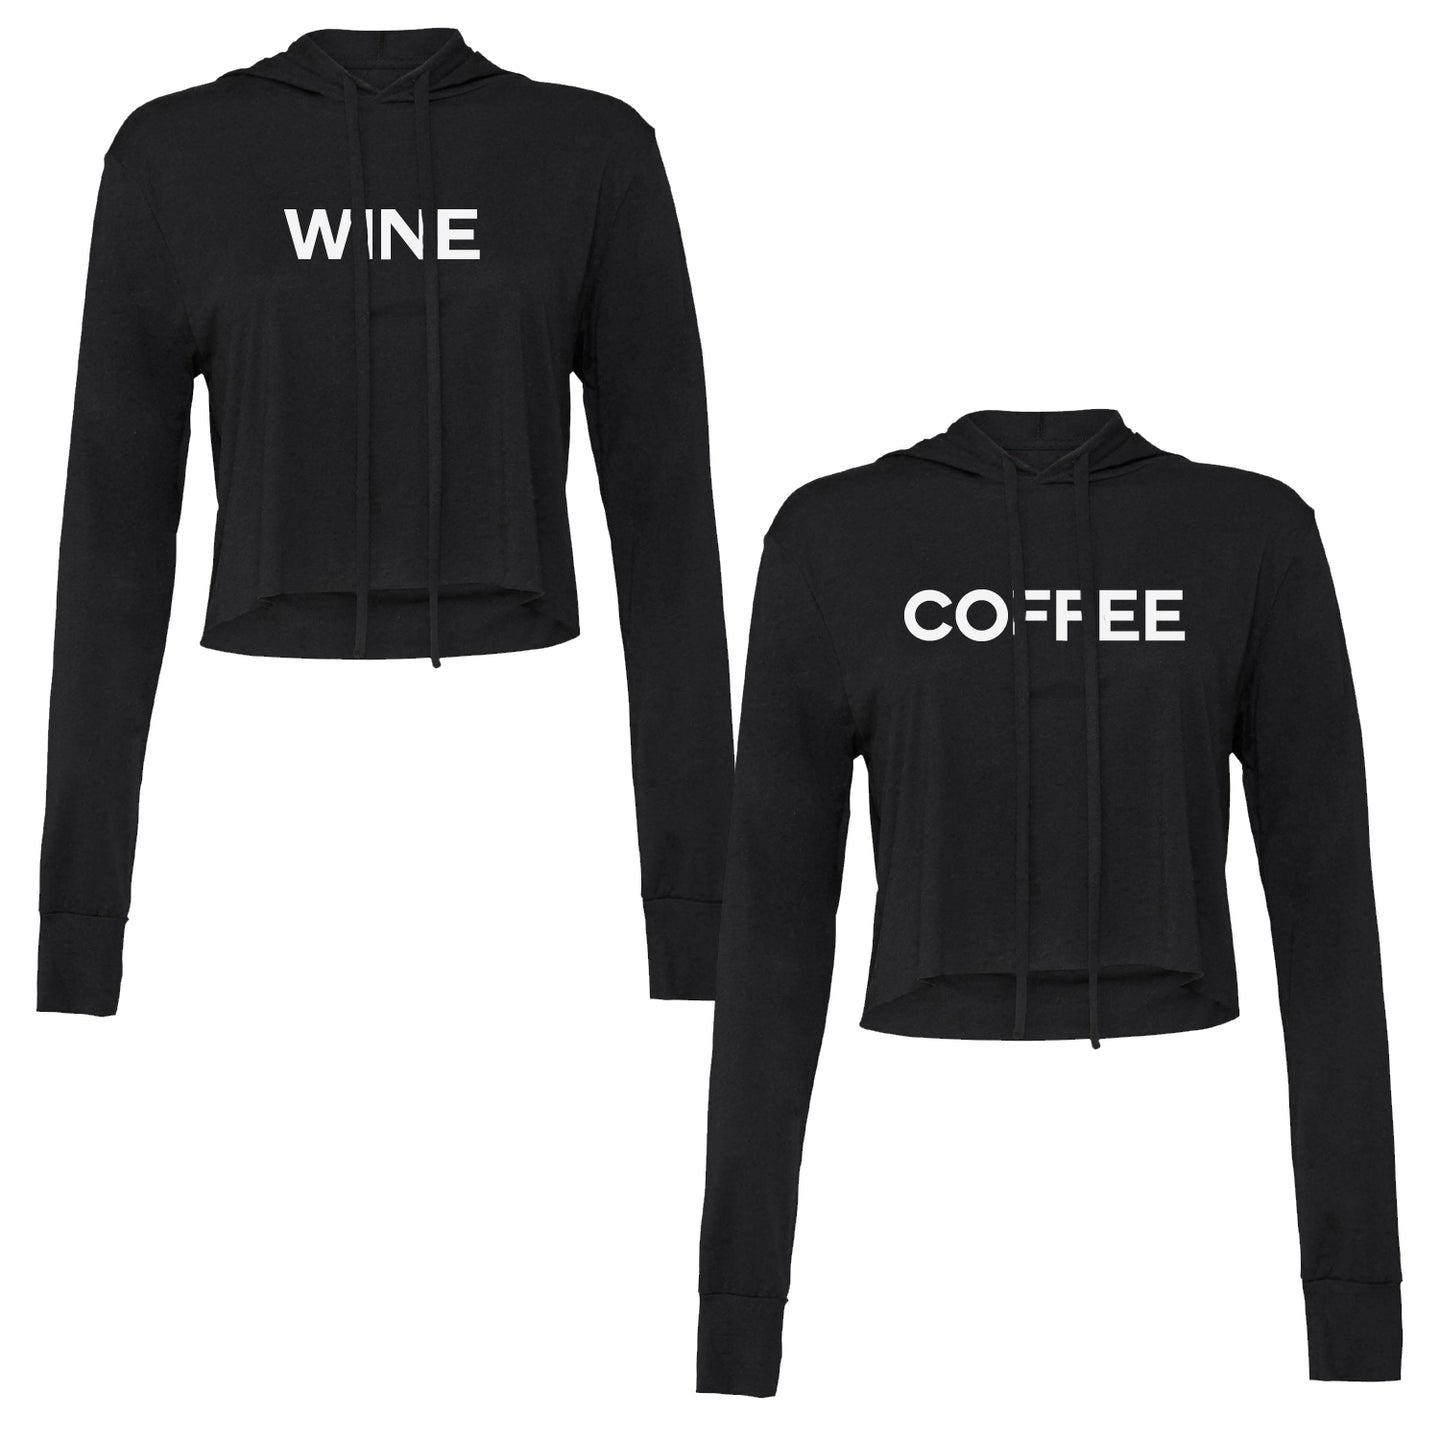 Set of two women's cropped long sleeve hooded t-shirts. Coffee screenprinted on the front of one, Wine screenprinted on the front of the other.